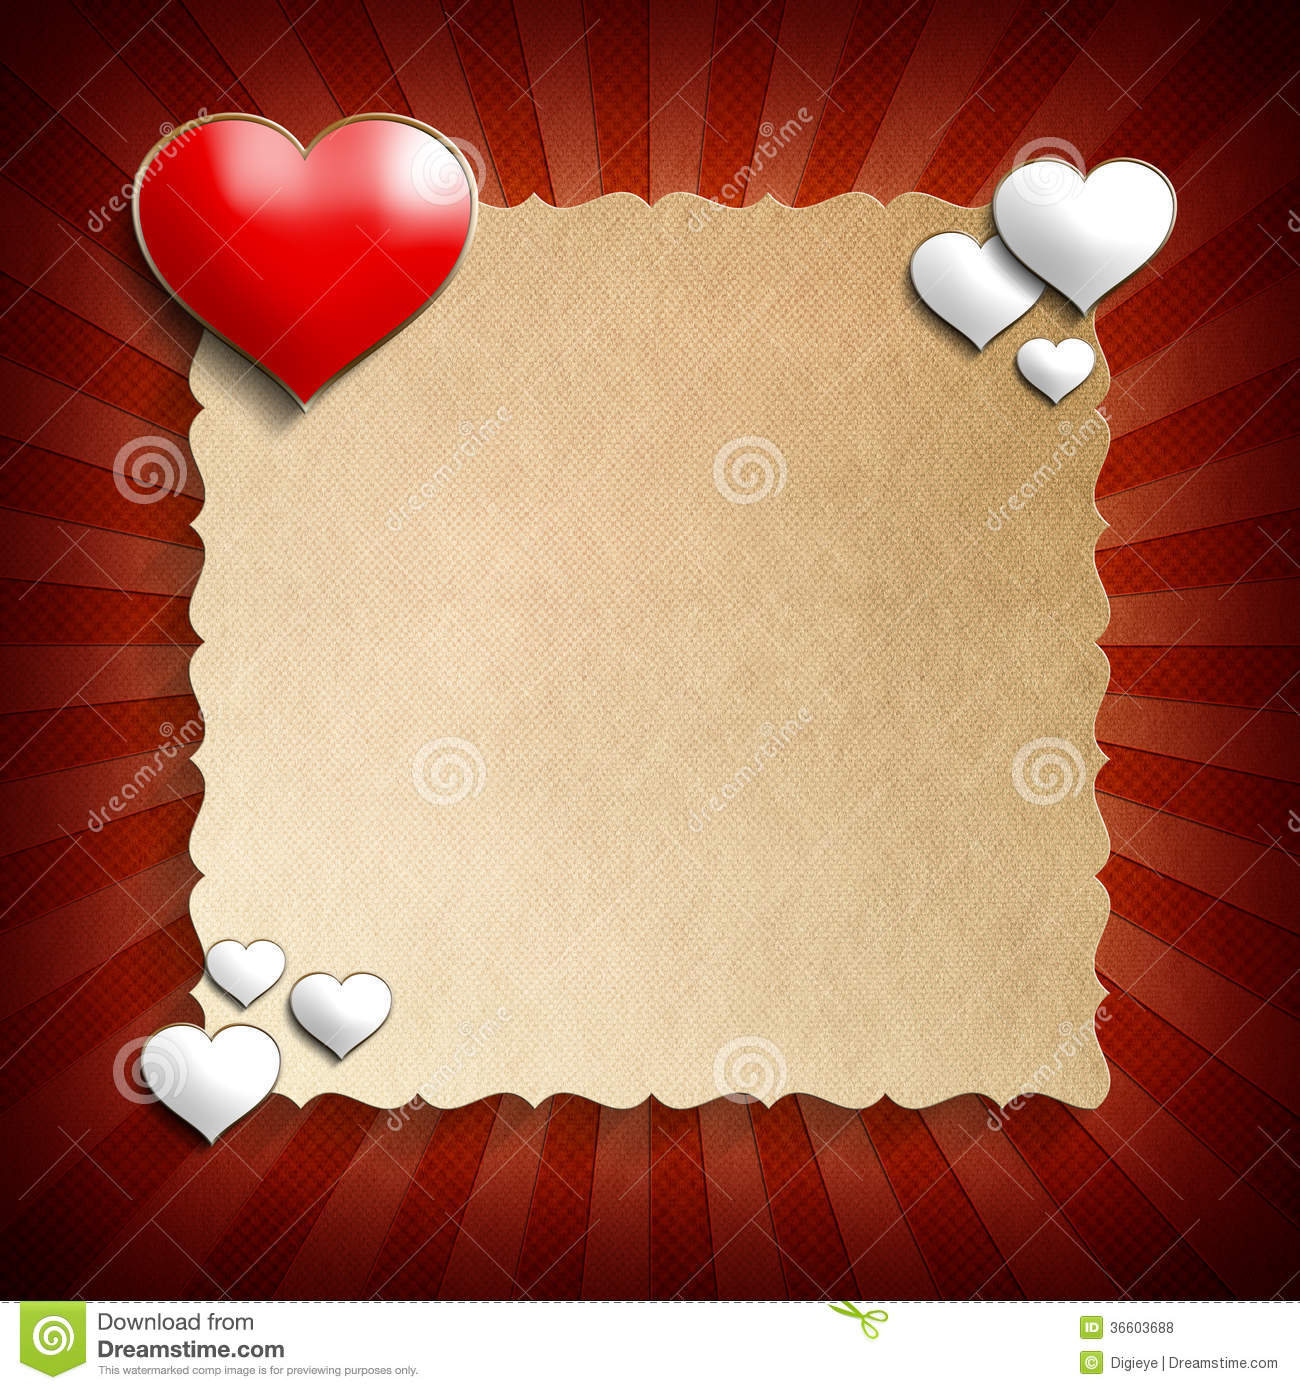 Valentine Day Background Template Royalty Free Stock